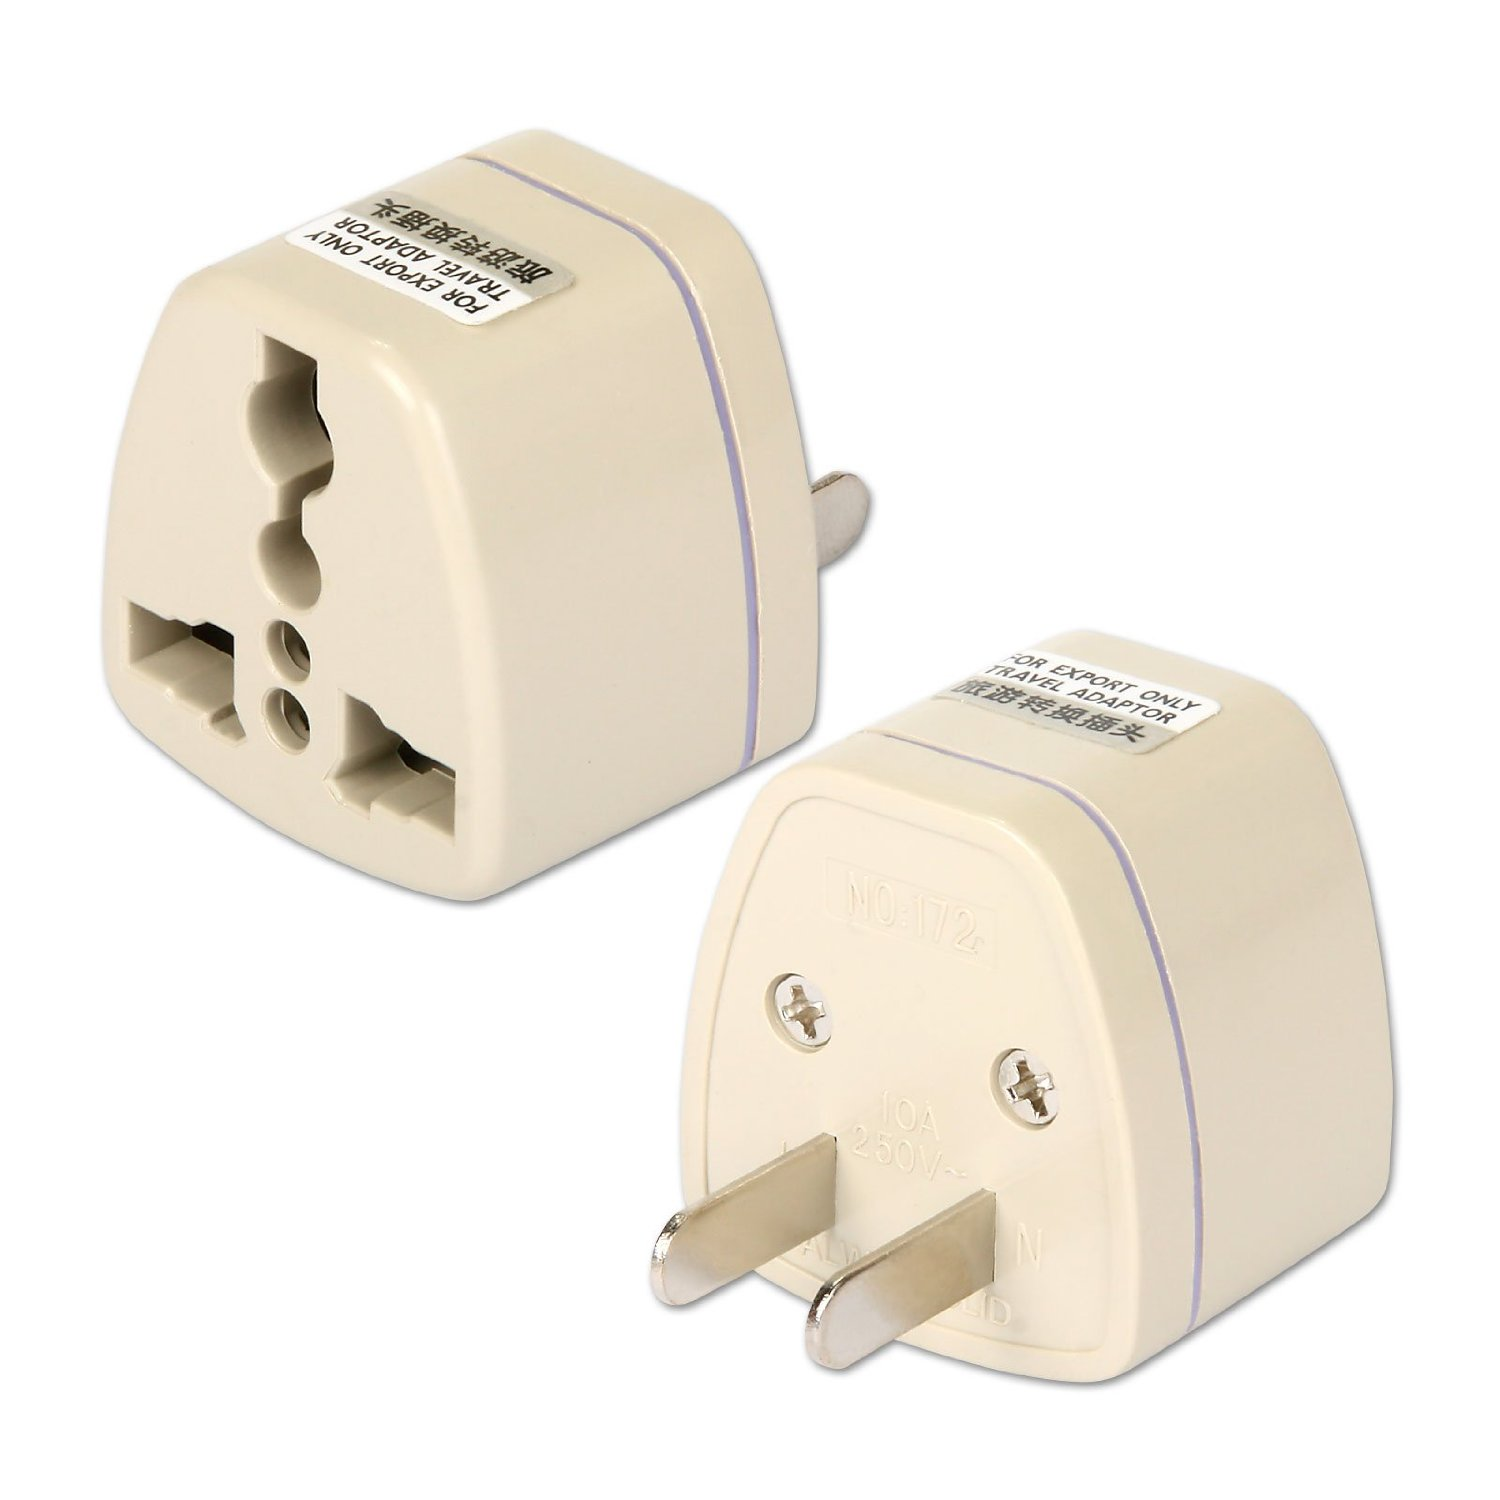 Generic UK/EU/AU/NZ to US USA-Style Travel Adapter Adaptor AC Power Plug Converter (Pack of 10)